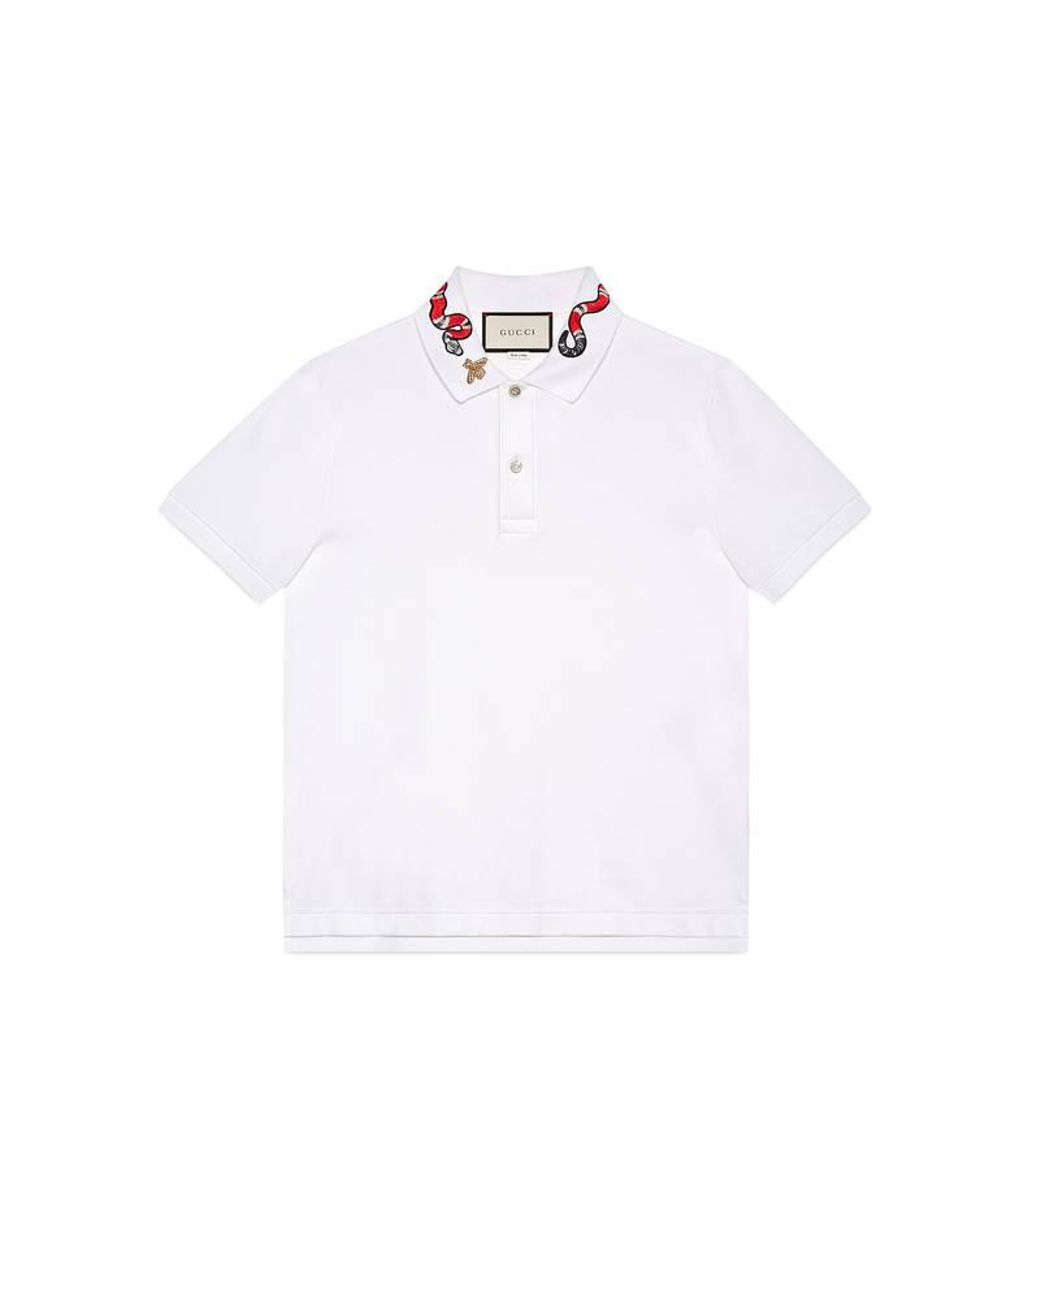 169a4505c14b Gucci Cotton Polo With Snake Embroidery in White for Men - Lyst